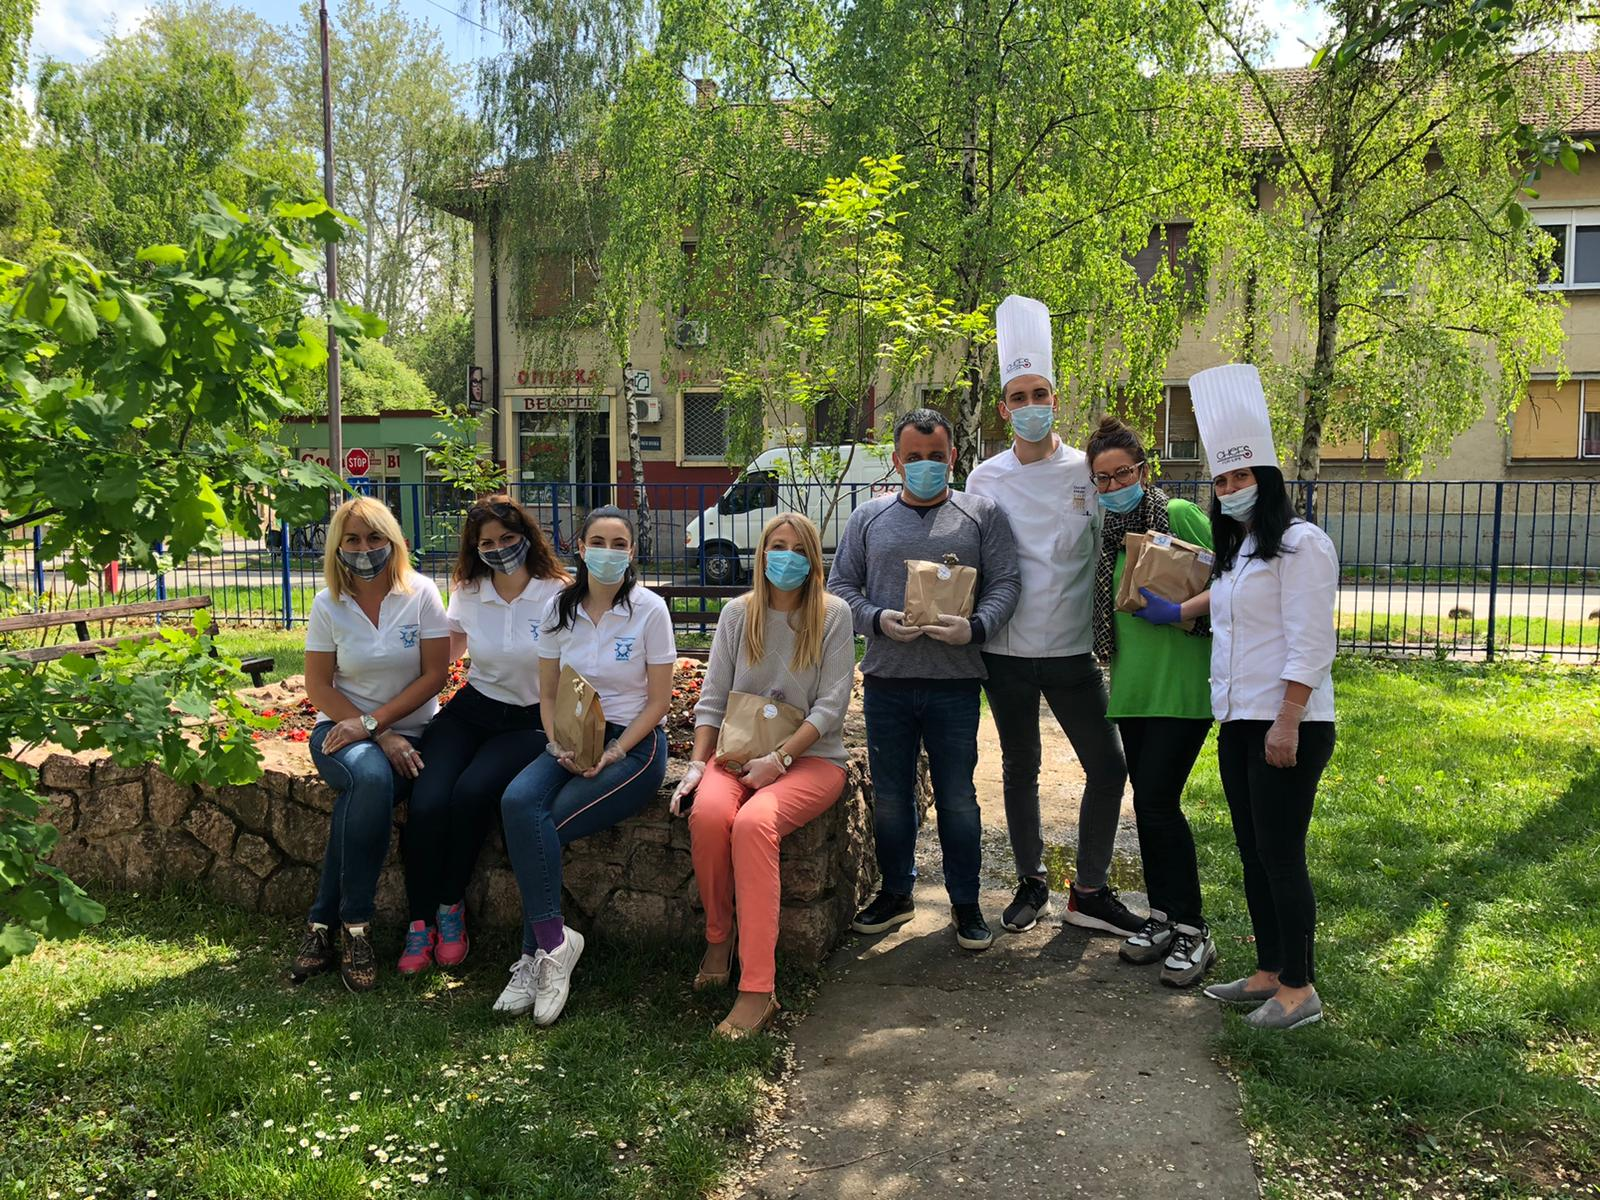 Empata volunteers in Serbia assisting people affected by COVID-19.